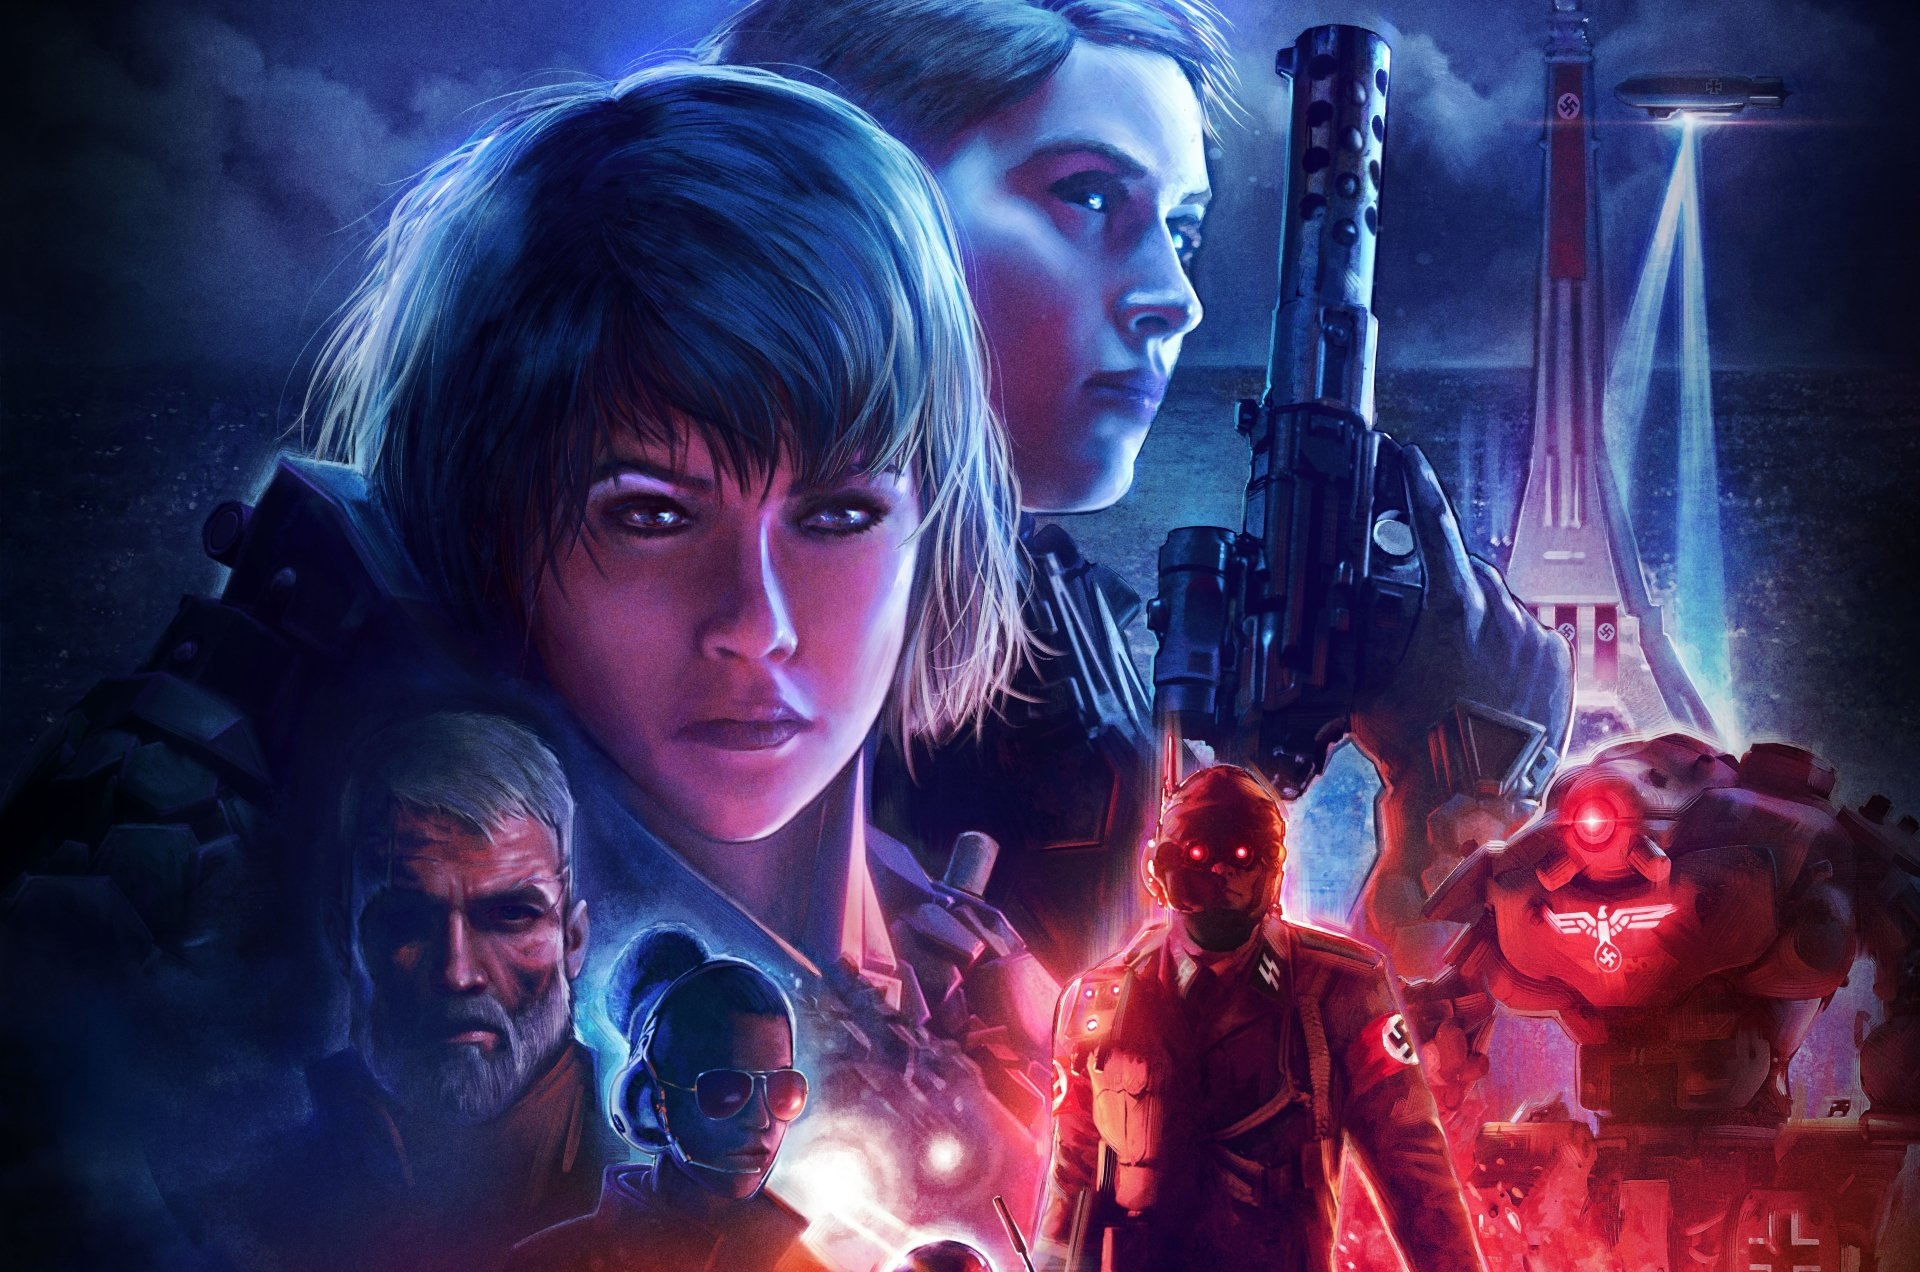 10 Wolfenstein Youngblood Hd Wallpapers Background Images Wallpaper Abyss